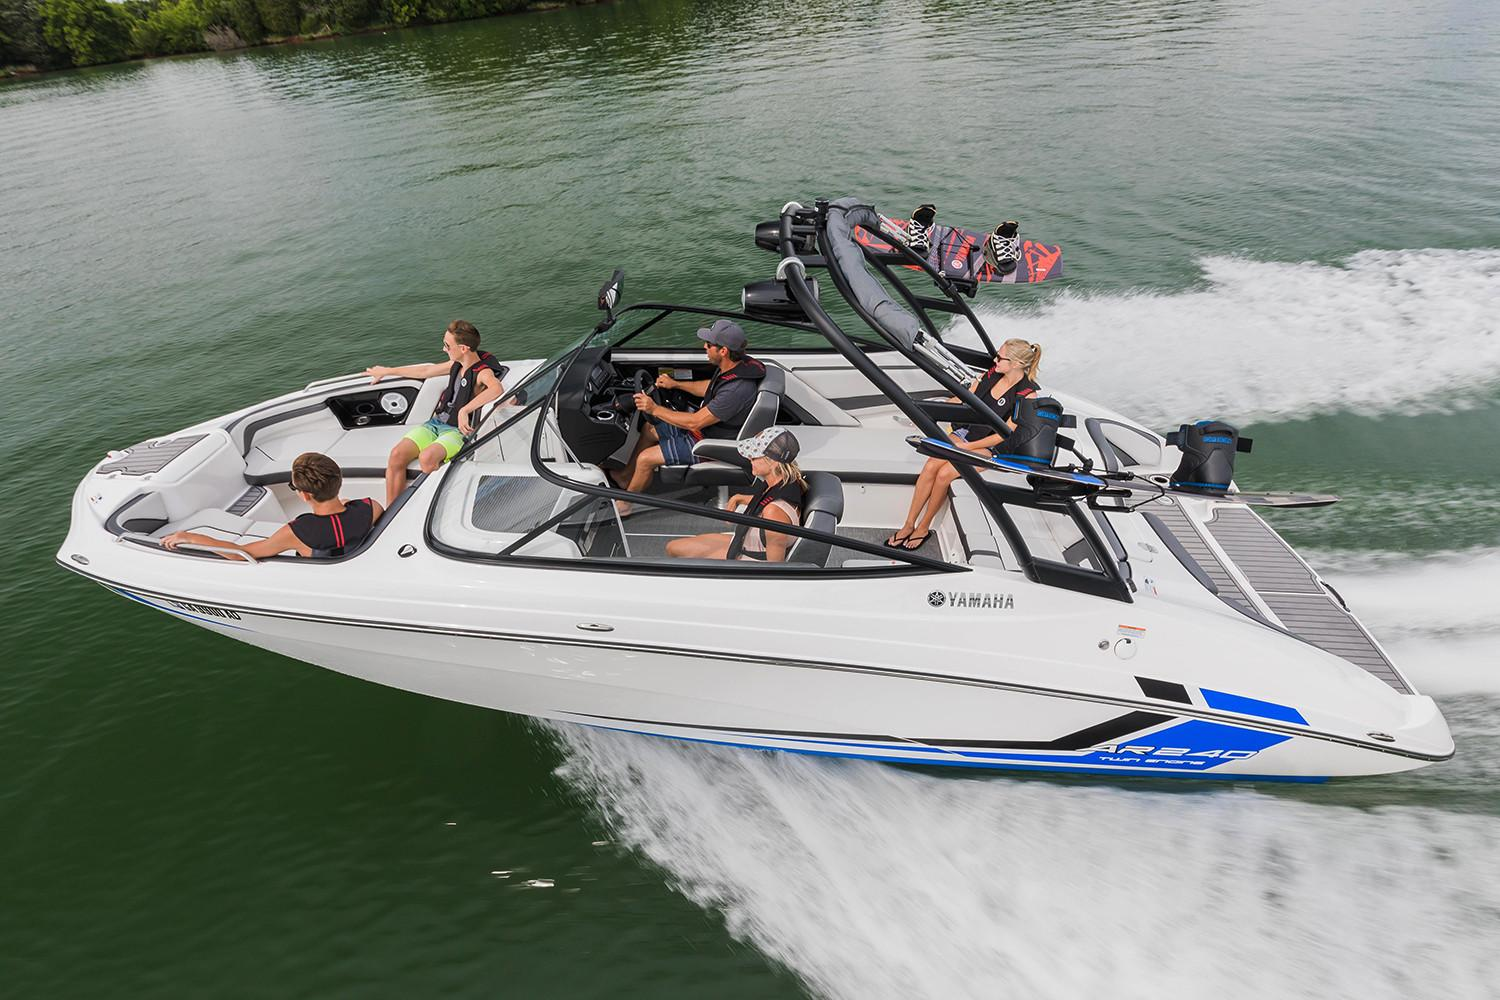 New 2018 yamaha ar240 power boats inboard in clearwater fl for 2018 yamaha jet boat